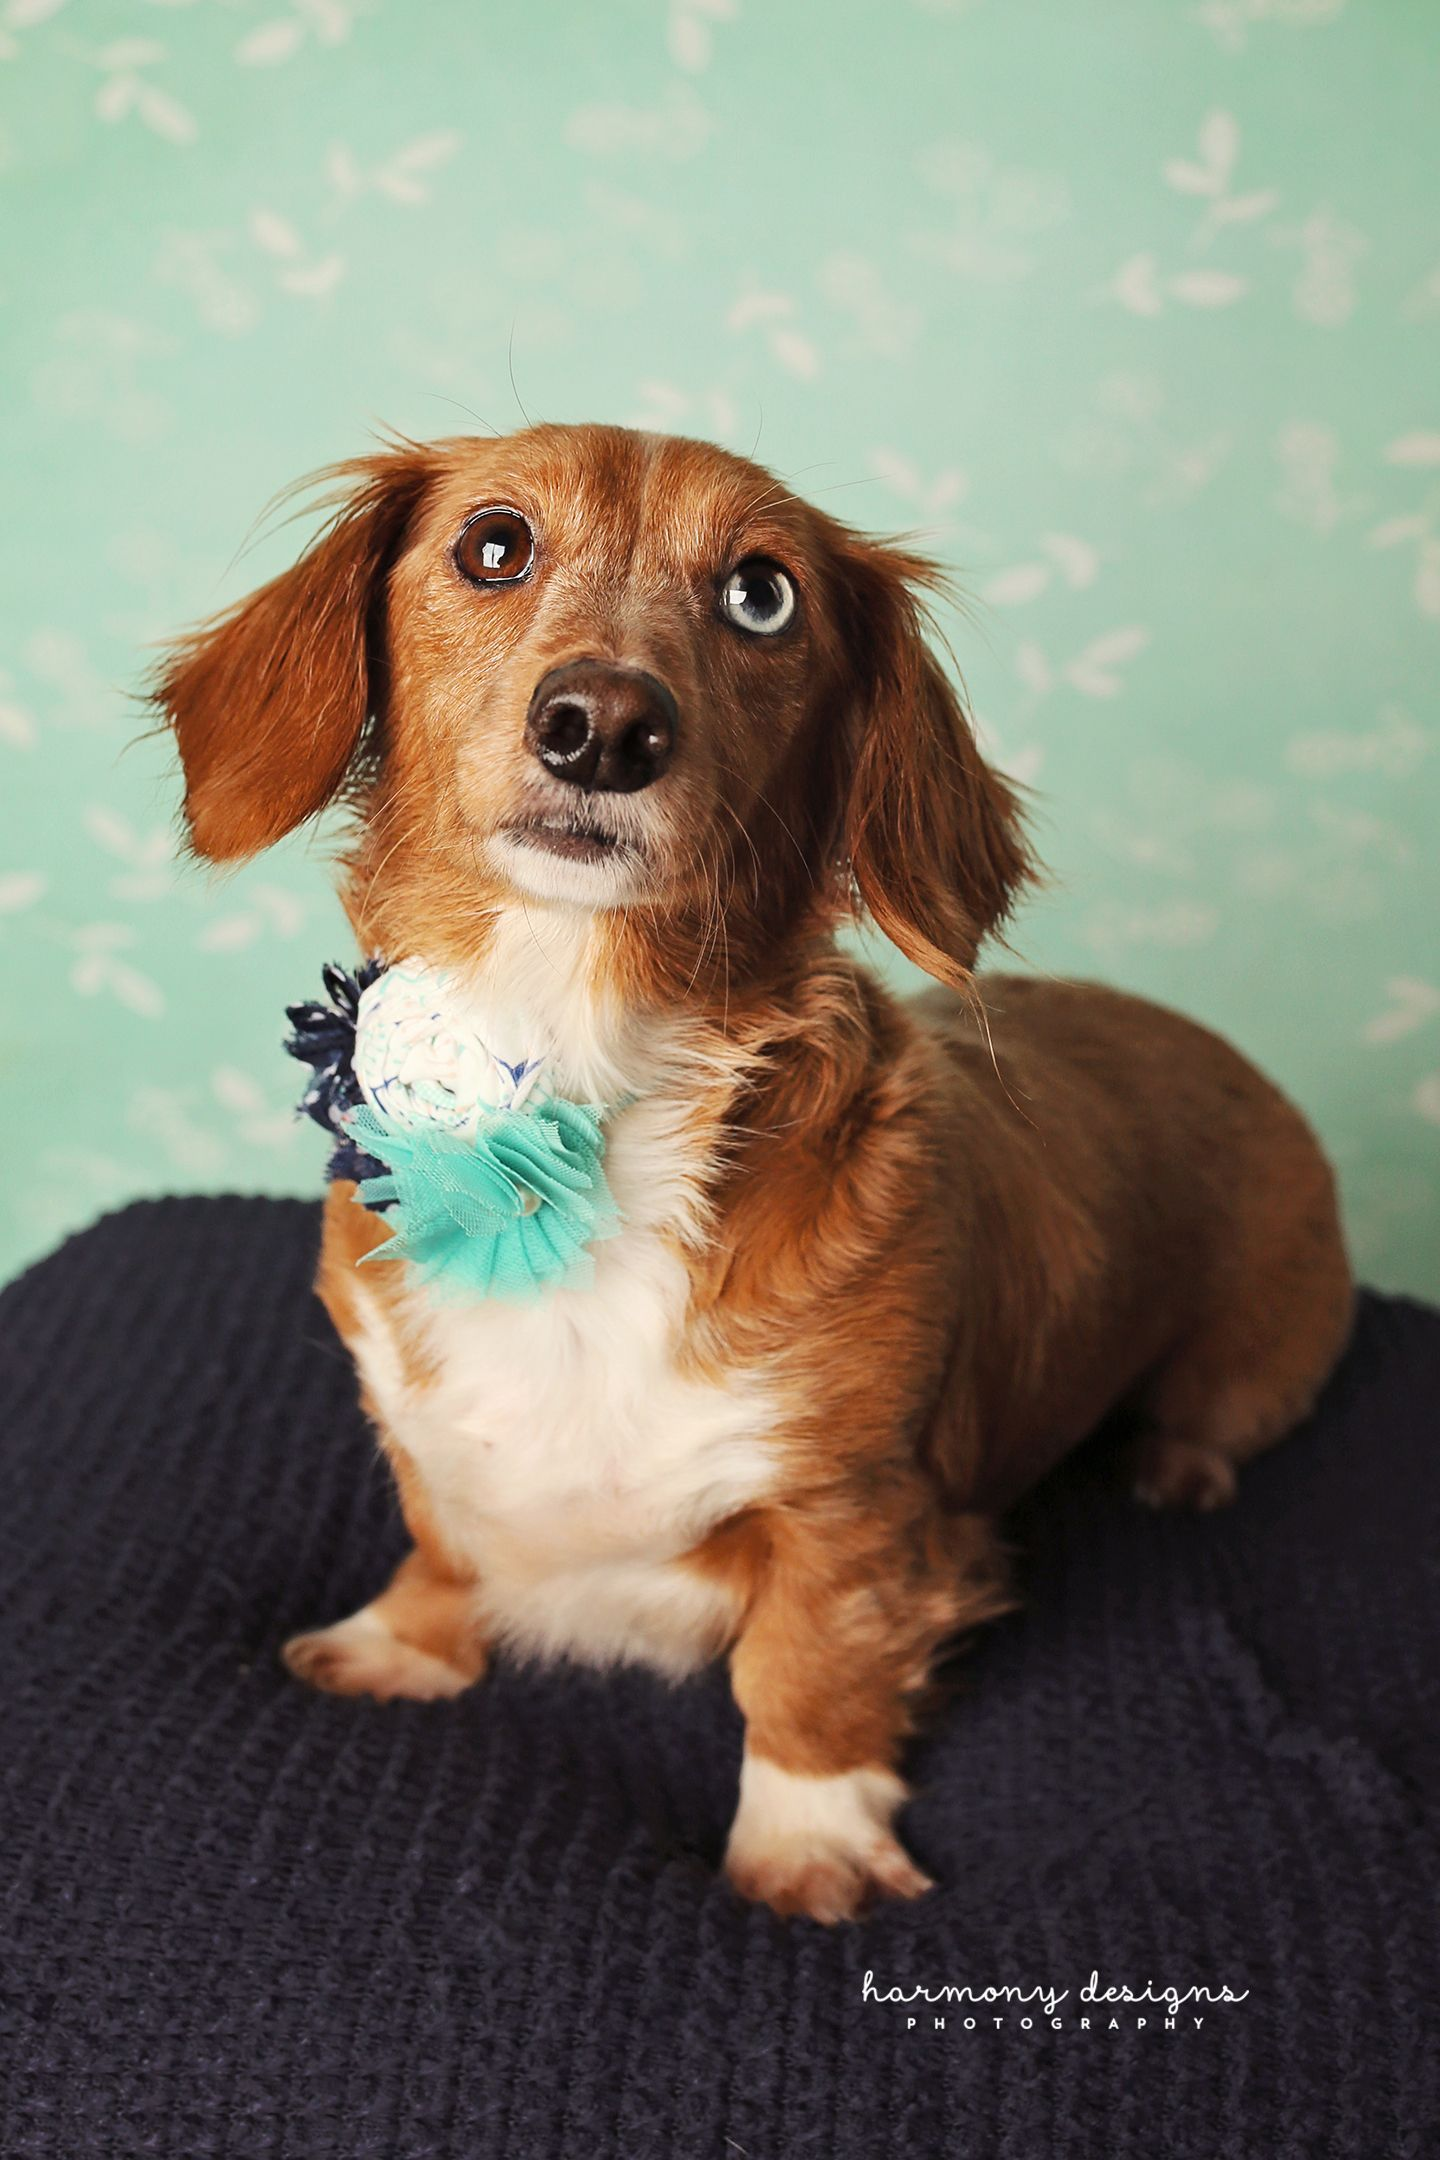 Bella Lynn Is An Adoptable Dachshund Searching For A Forever